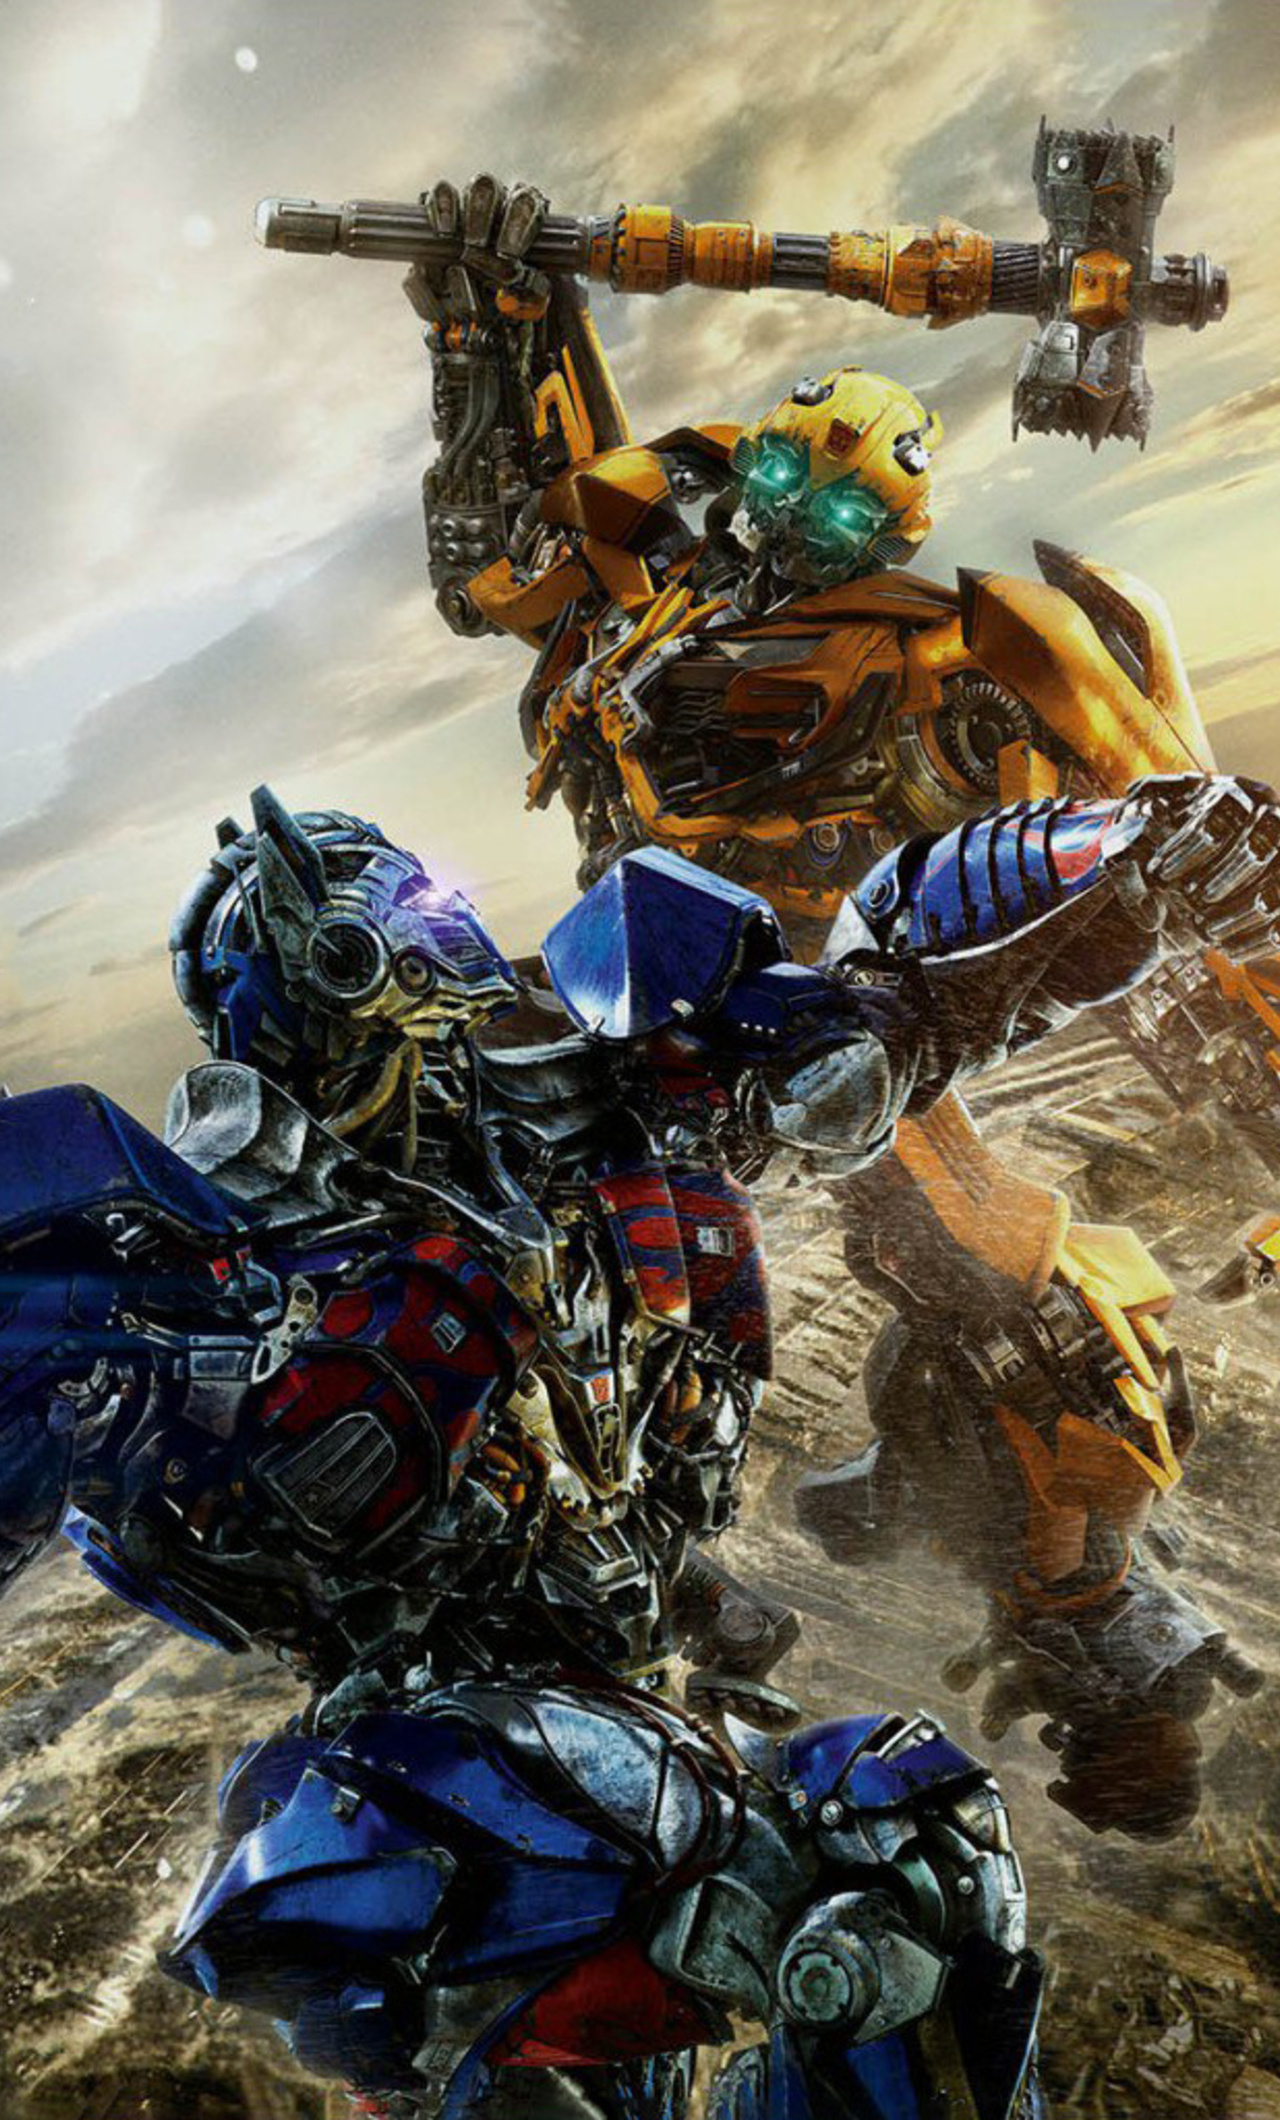 optimus-prime-vs-bumblebbe-transformers-the-last-knight-g2.jpg